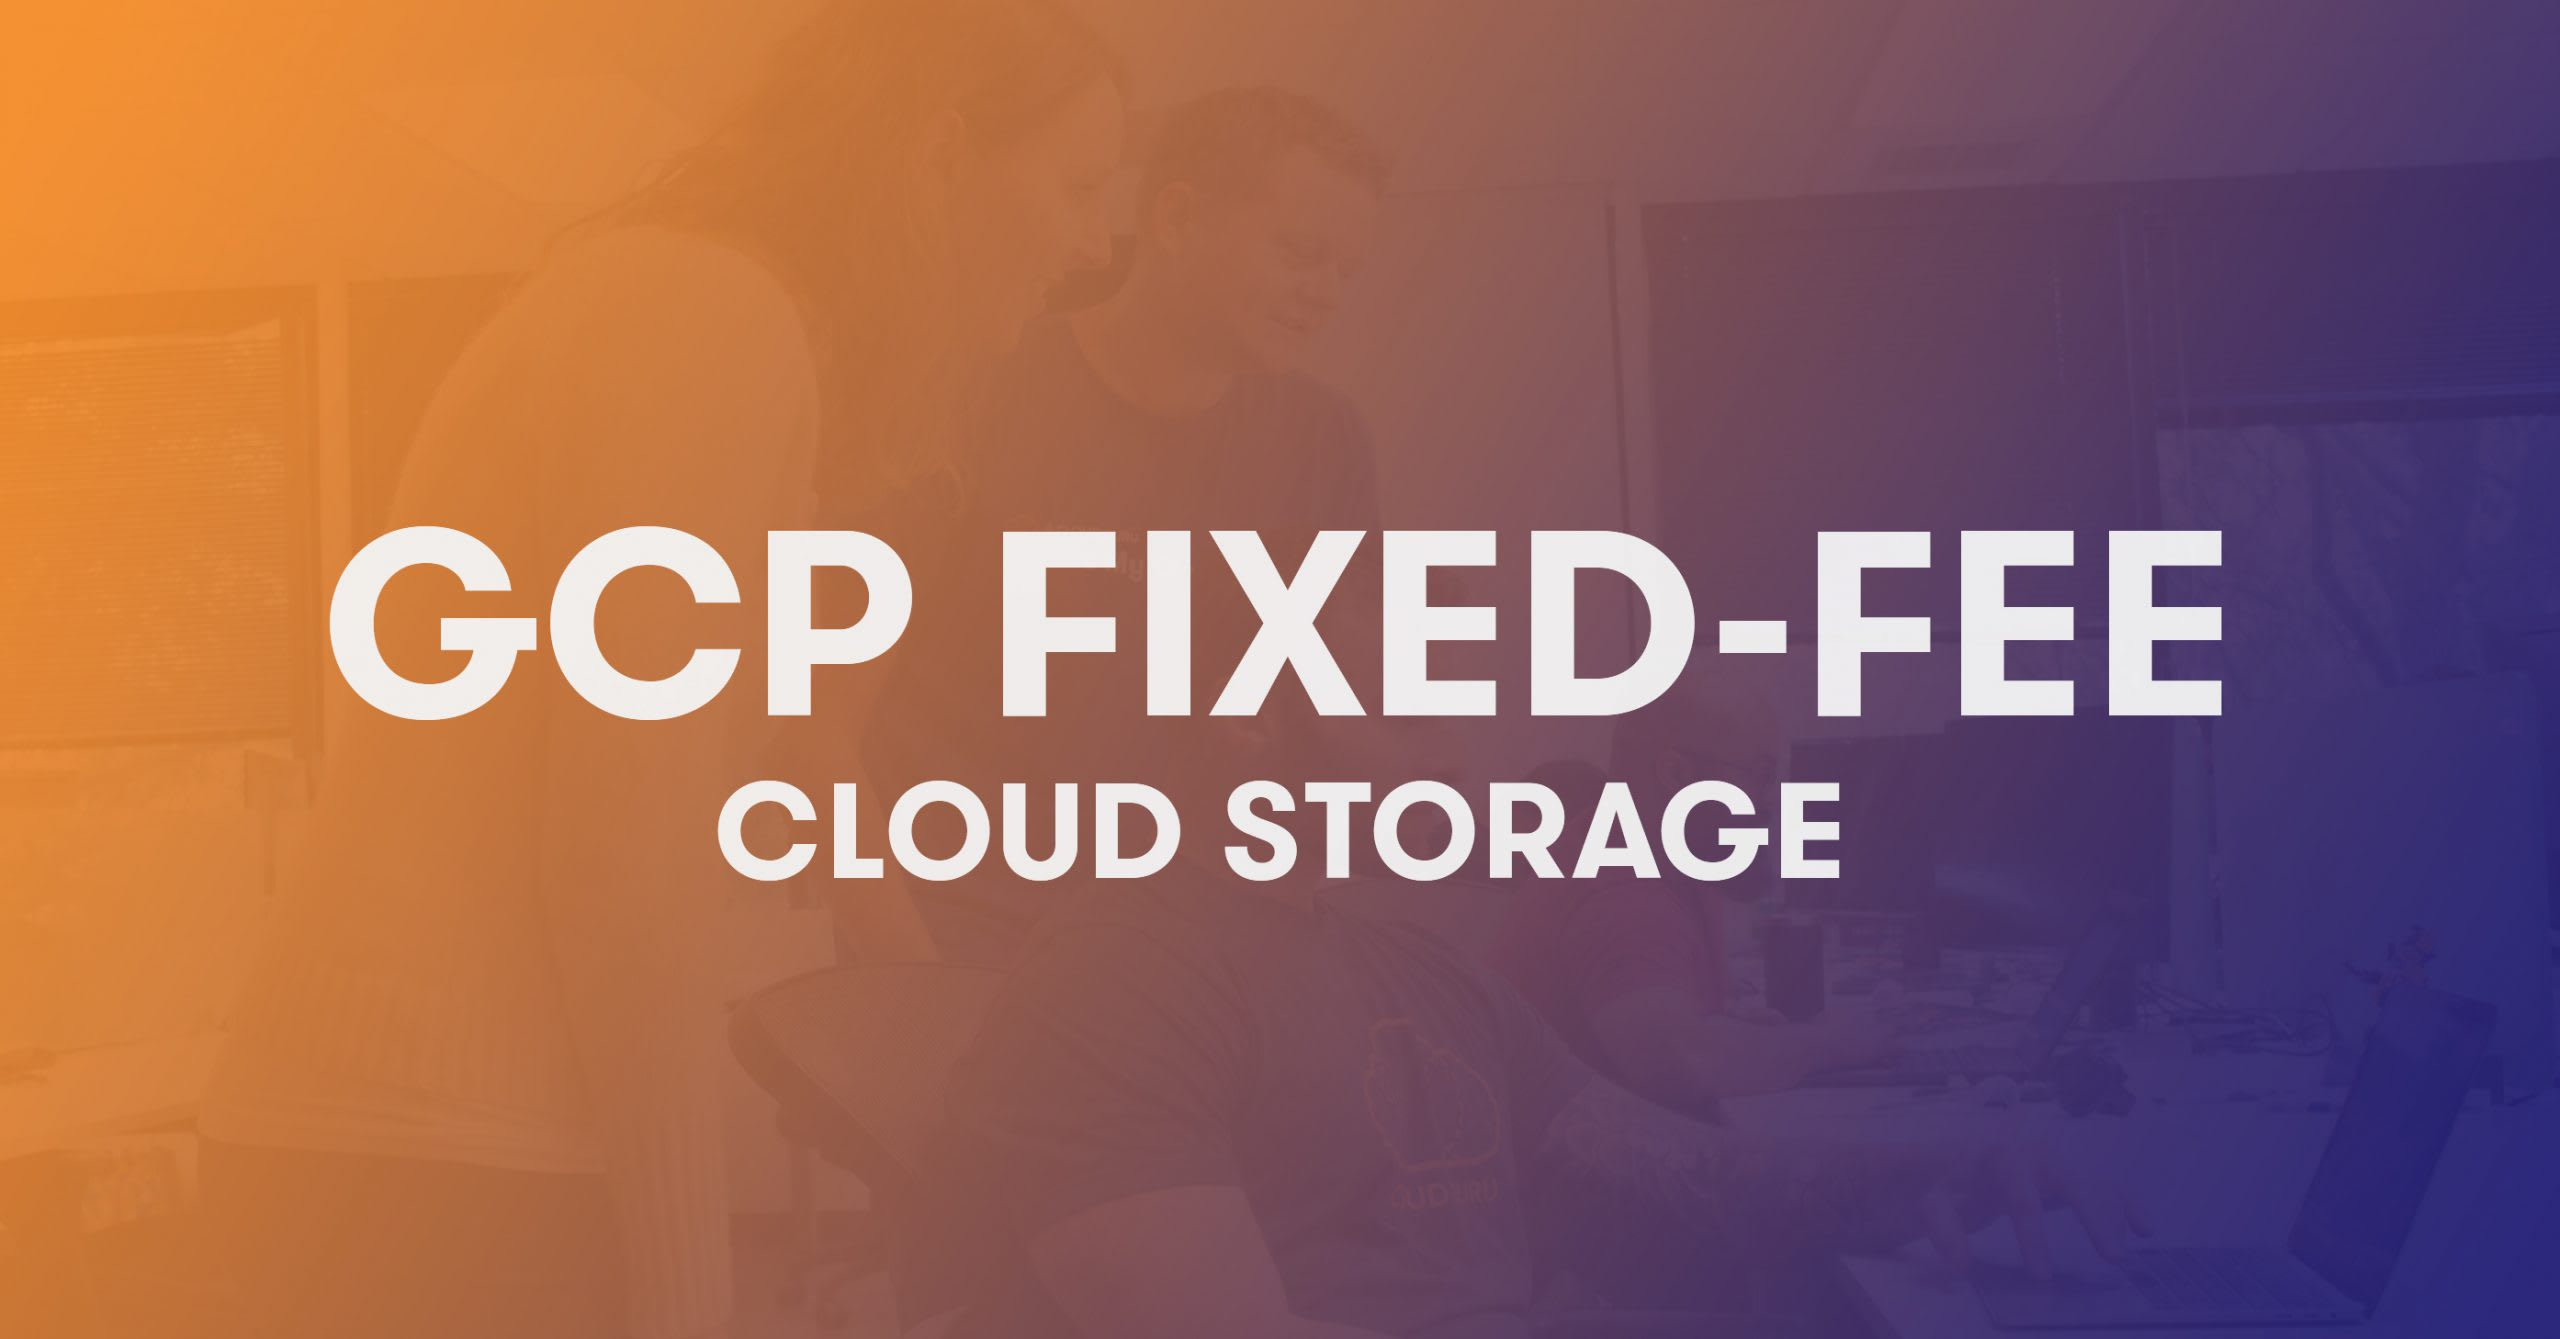 GCP Fixed-FEE Cloud Storage